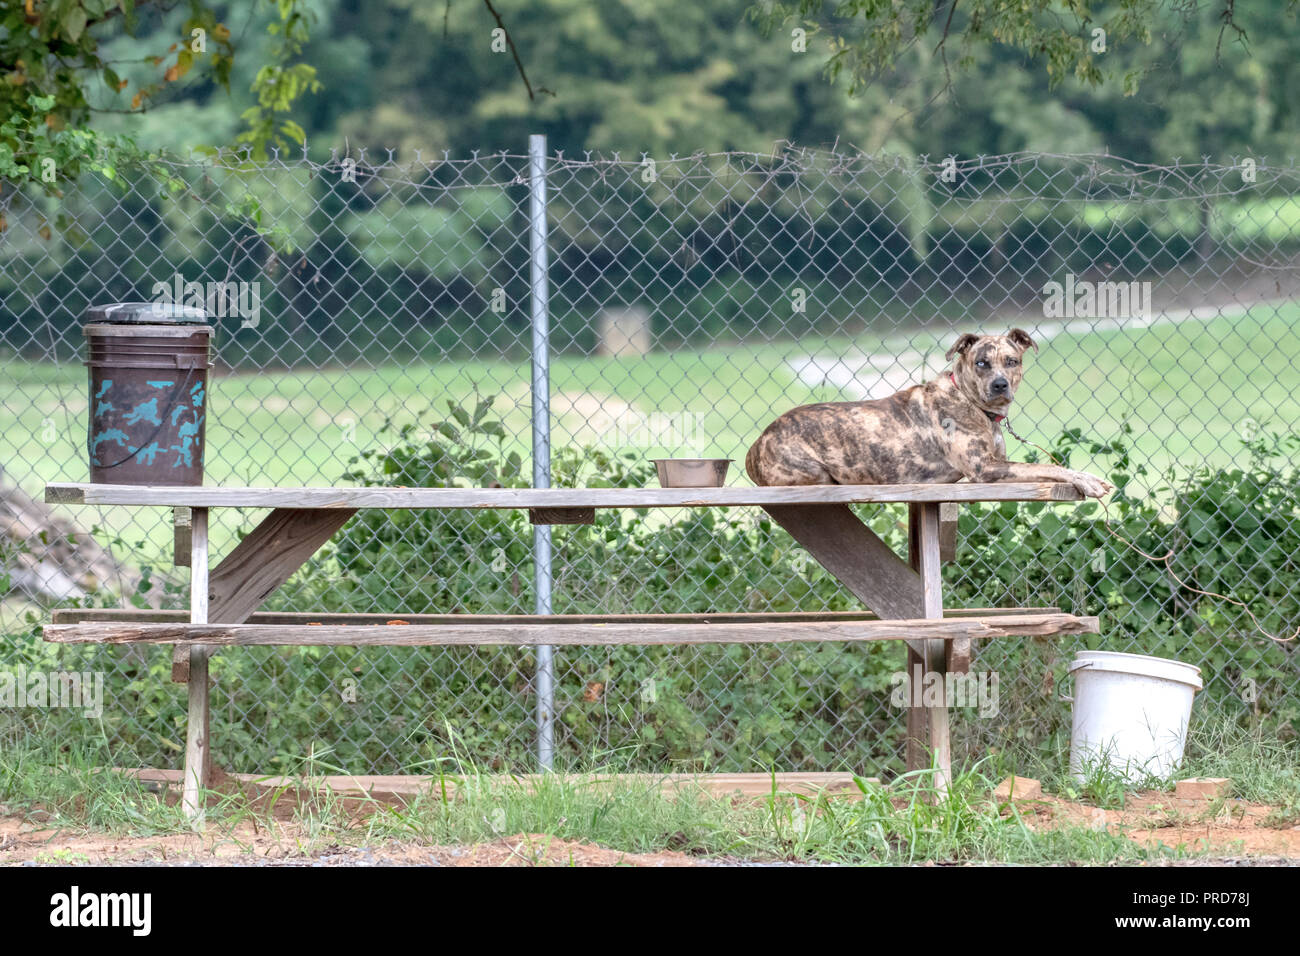 A brindle pit bull mixed-breed dog relaxes on a picnic table at camp in a striking horizontal symmetrical composition. - Stock Image